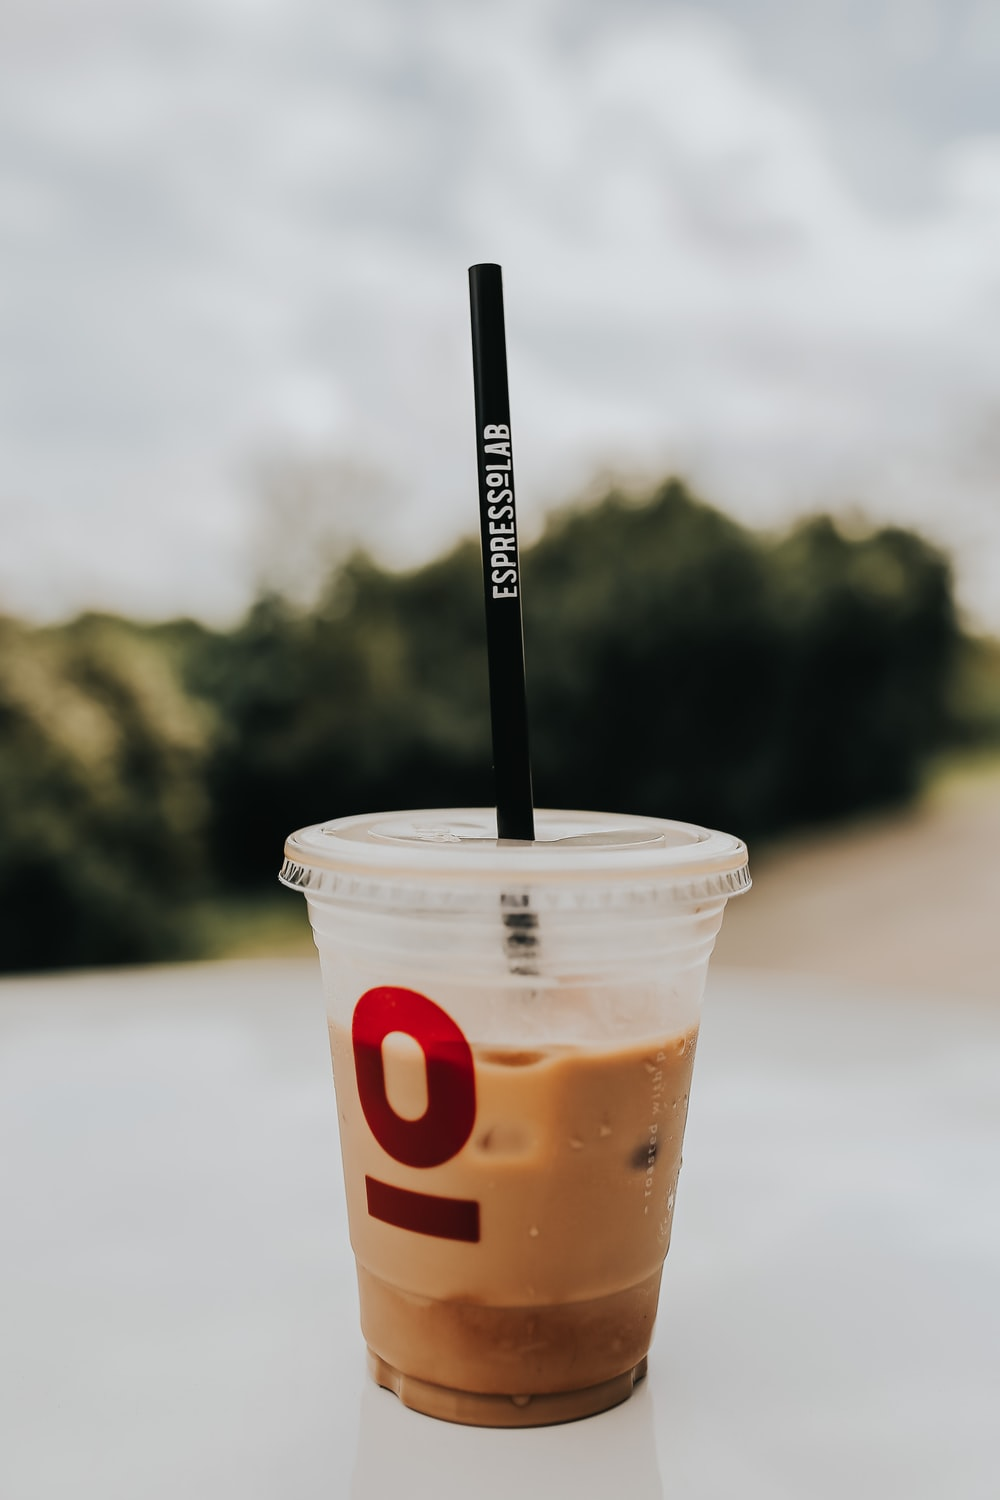 dunkin donuts disposable cup with black straw